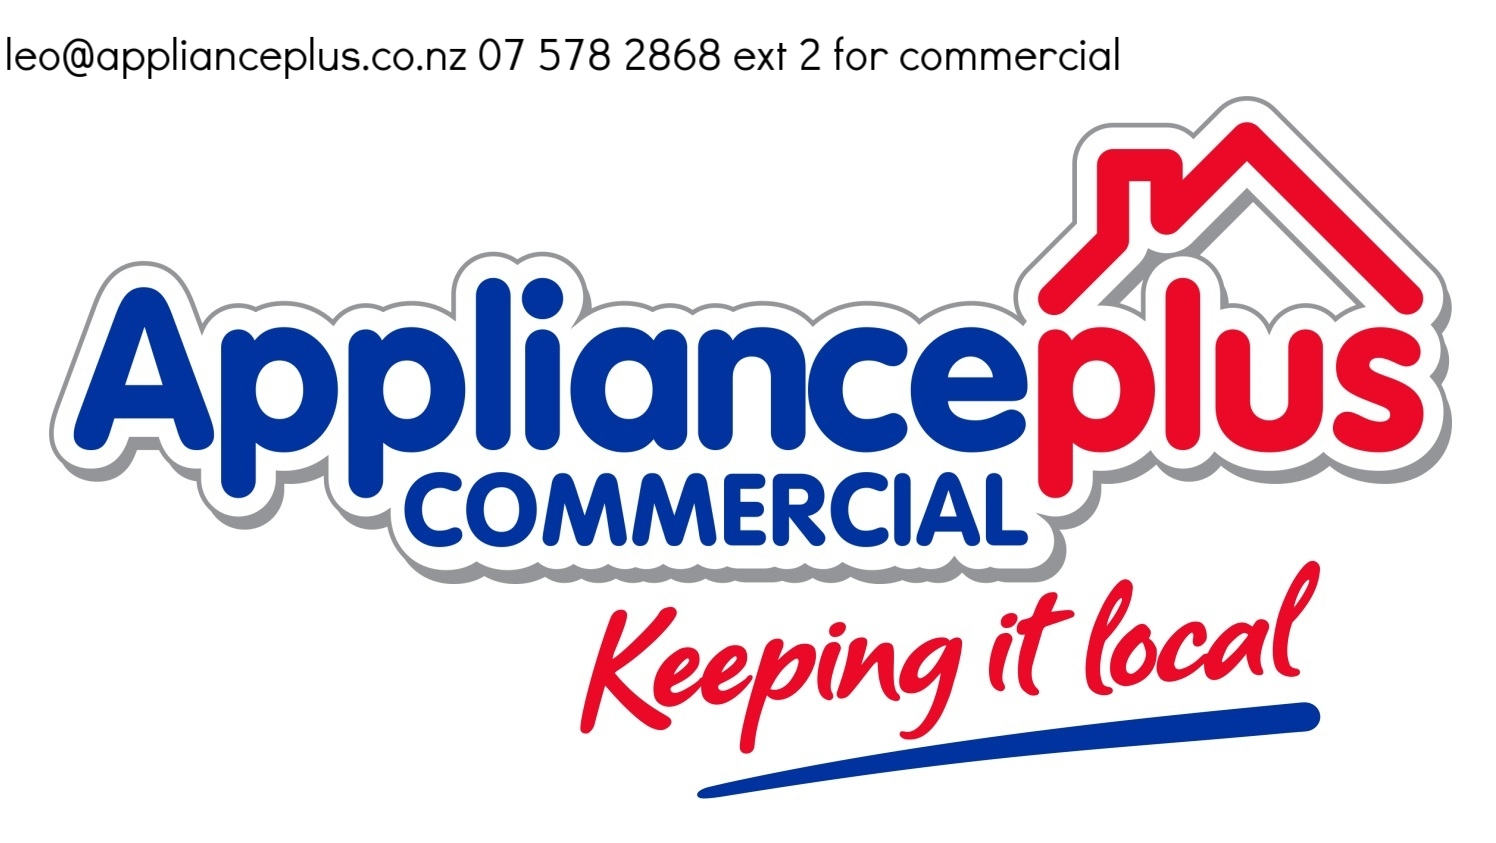 Direct phone:    Phone (07) 578-2868 Option 2 for Commercial         Email Contact:     leo@applianceplus.co.nz